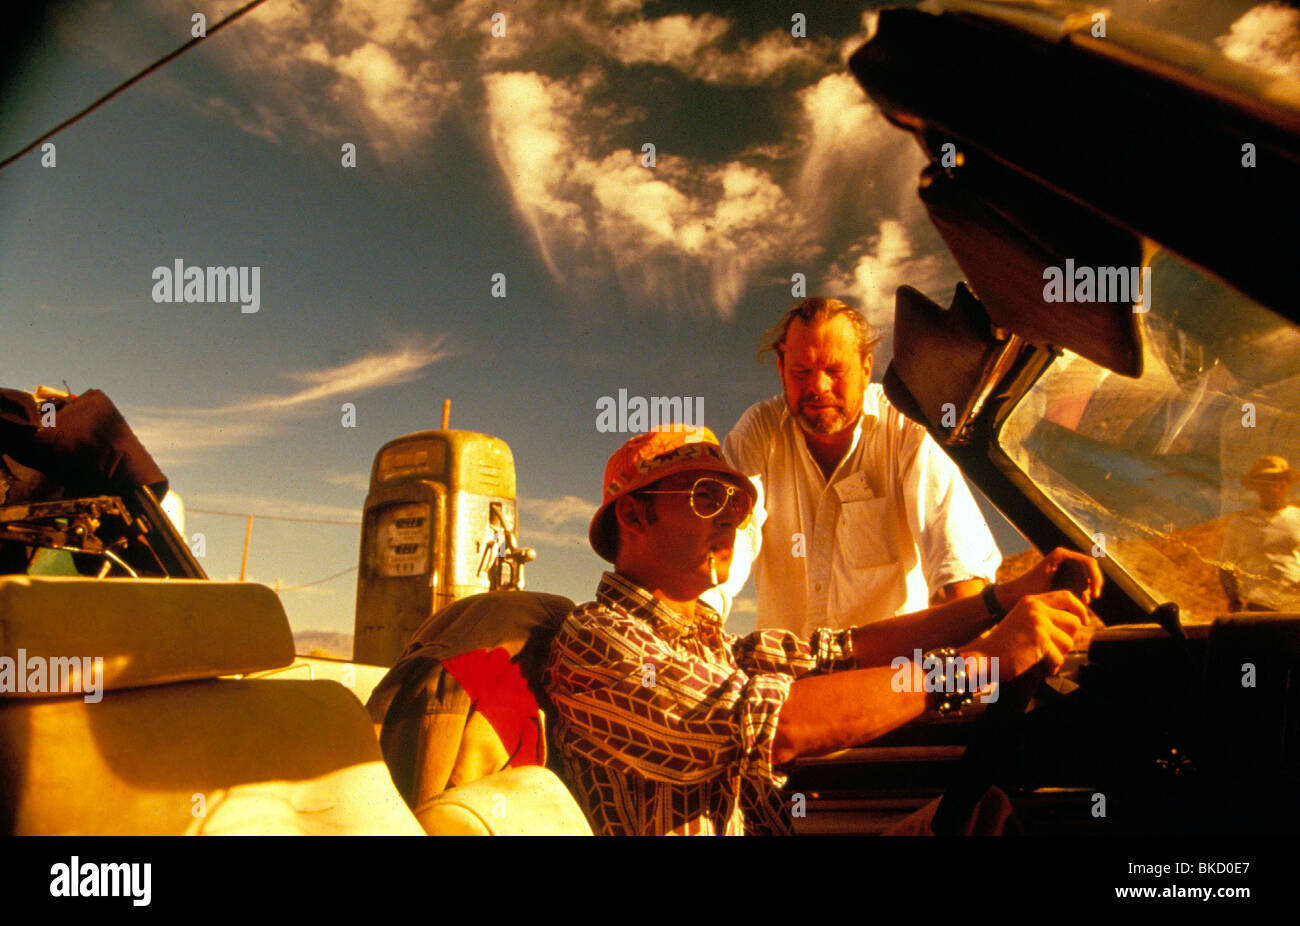 TERRY GILLIAM (DIR) O/S 'FEAR AND LOATHING IN LAS VEGAS' (1998) JOHNNY DEPP TYGM 013 - Stock Image